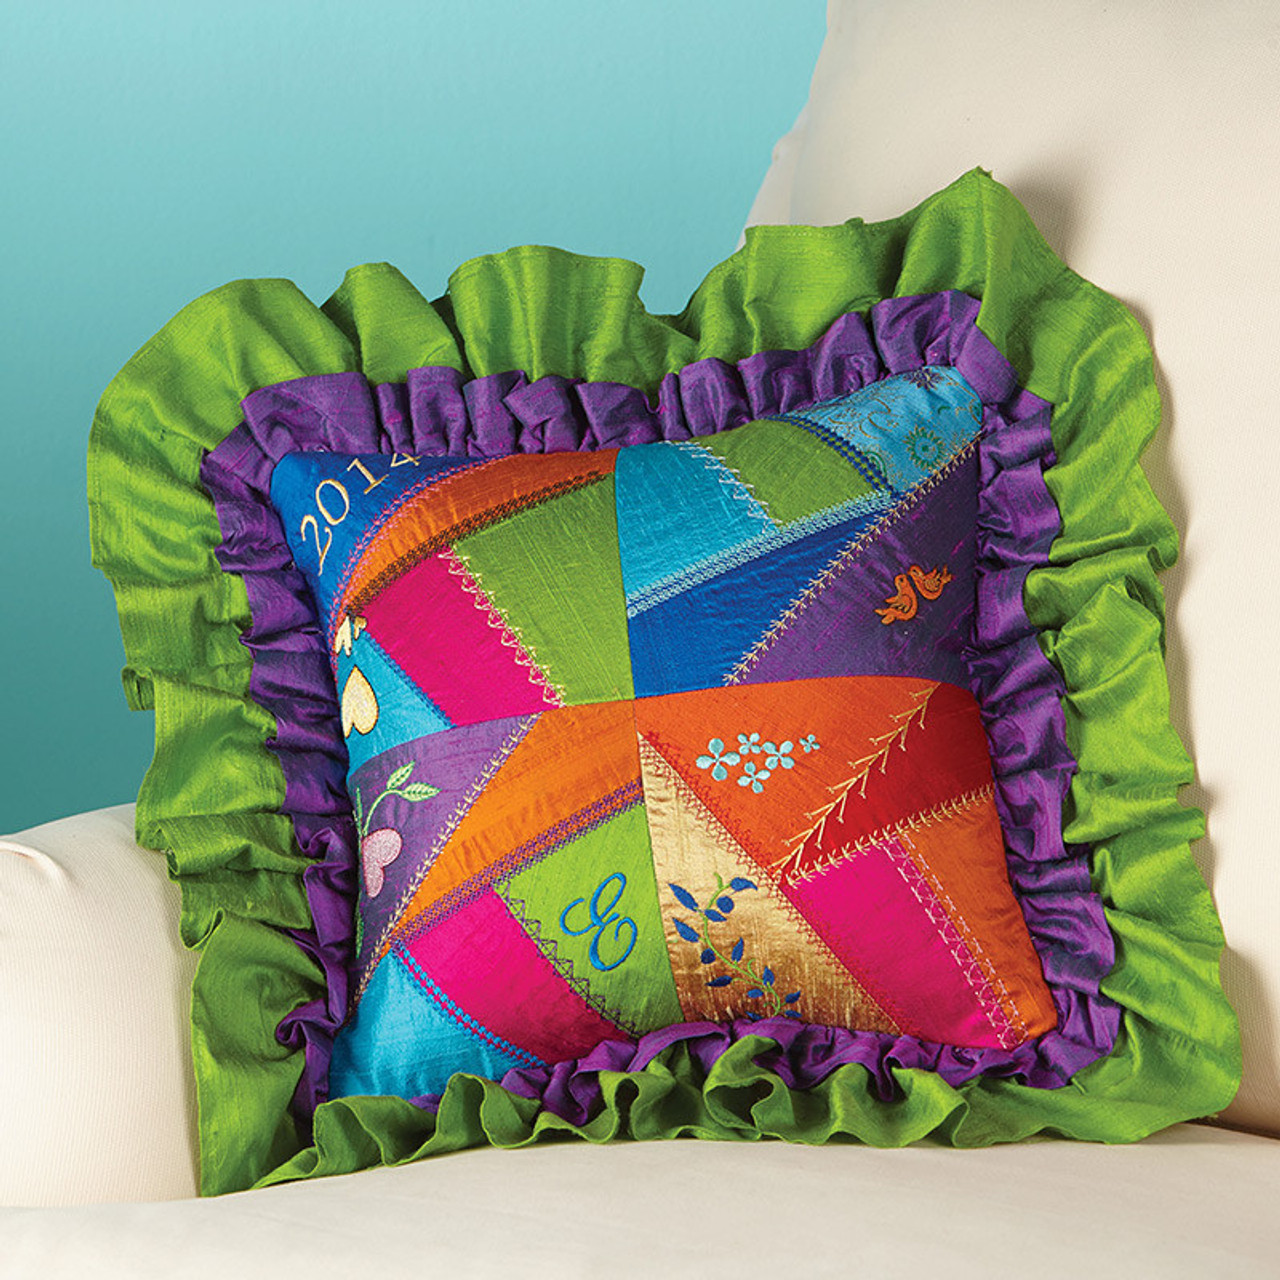 Todays Crazy Quilting With Your Embroidery Machine Book And CD